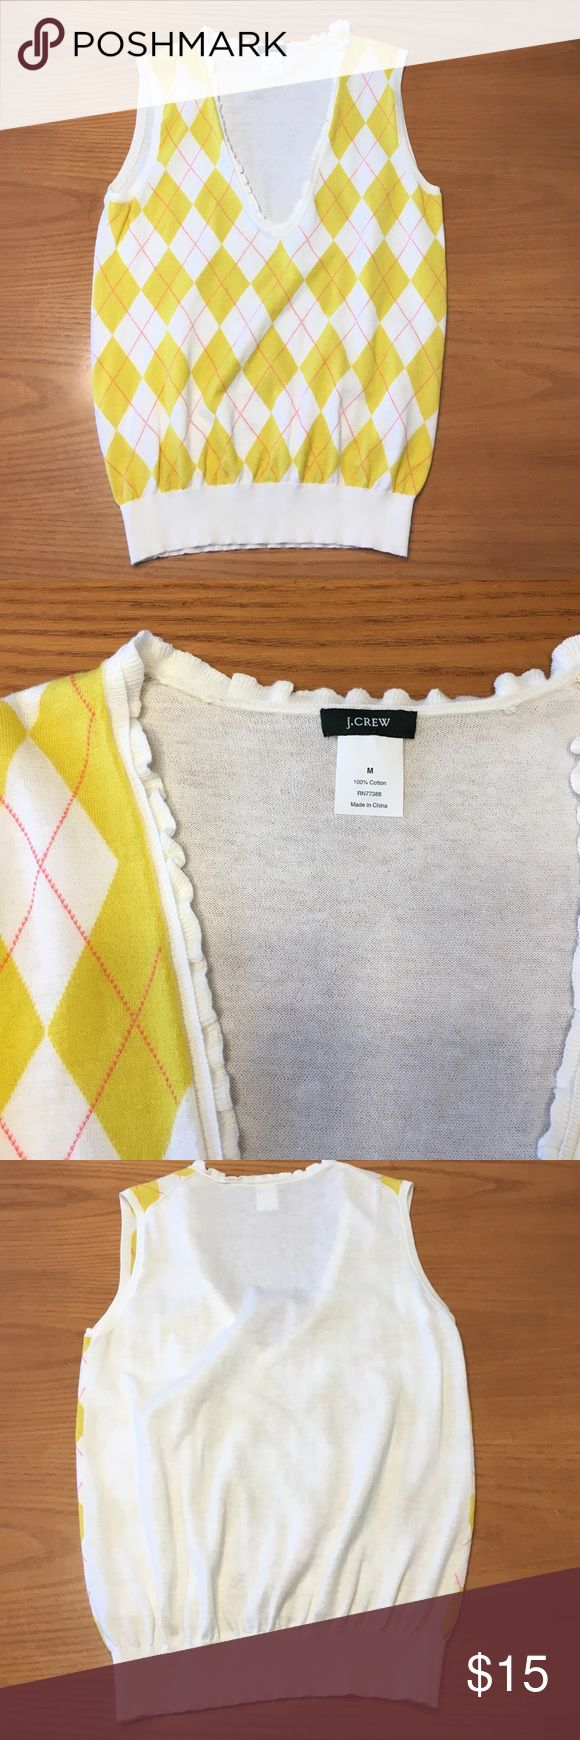 NWOT J. Crew Argyle Vest New, never-worn argyle vest from J. Crew. Rock the sexy nerd look with this as part of your outfit! J. Crew Sweaters